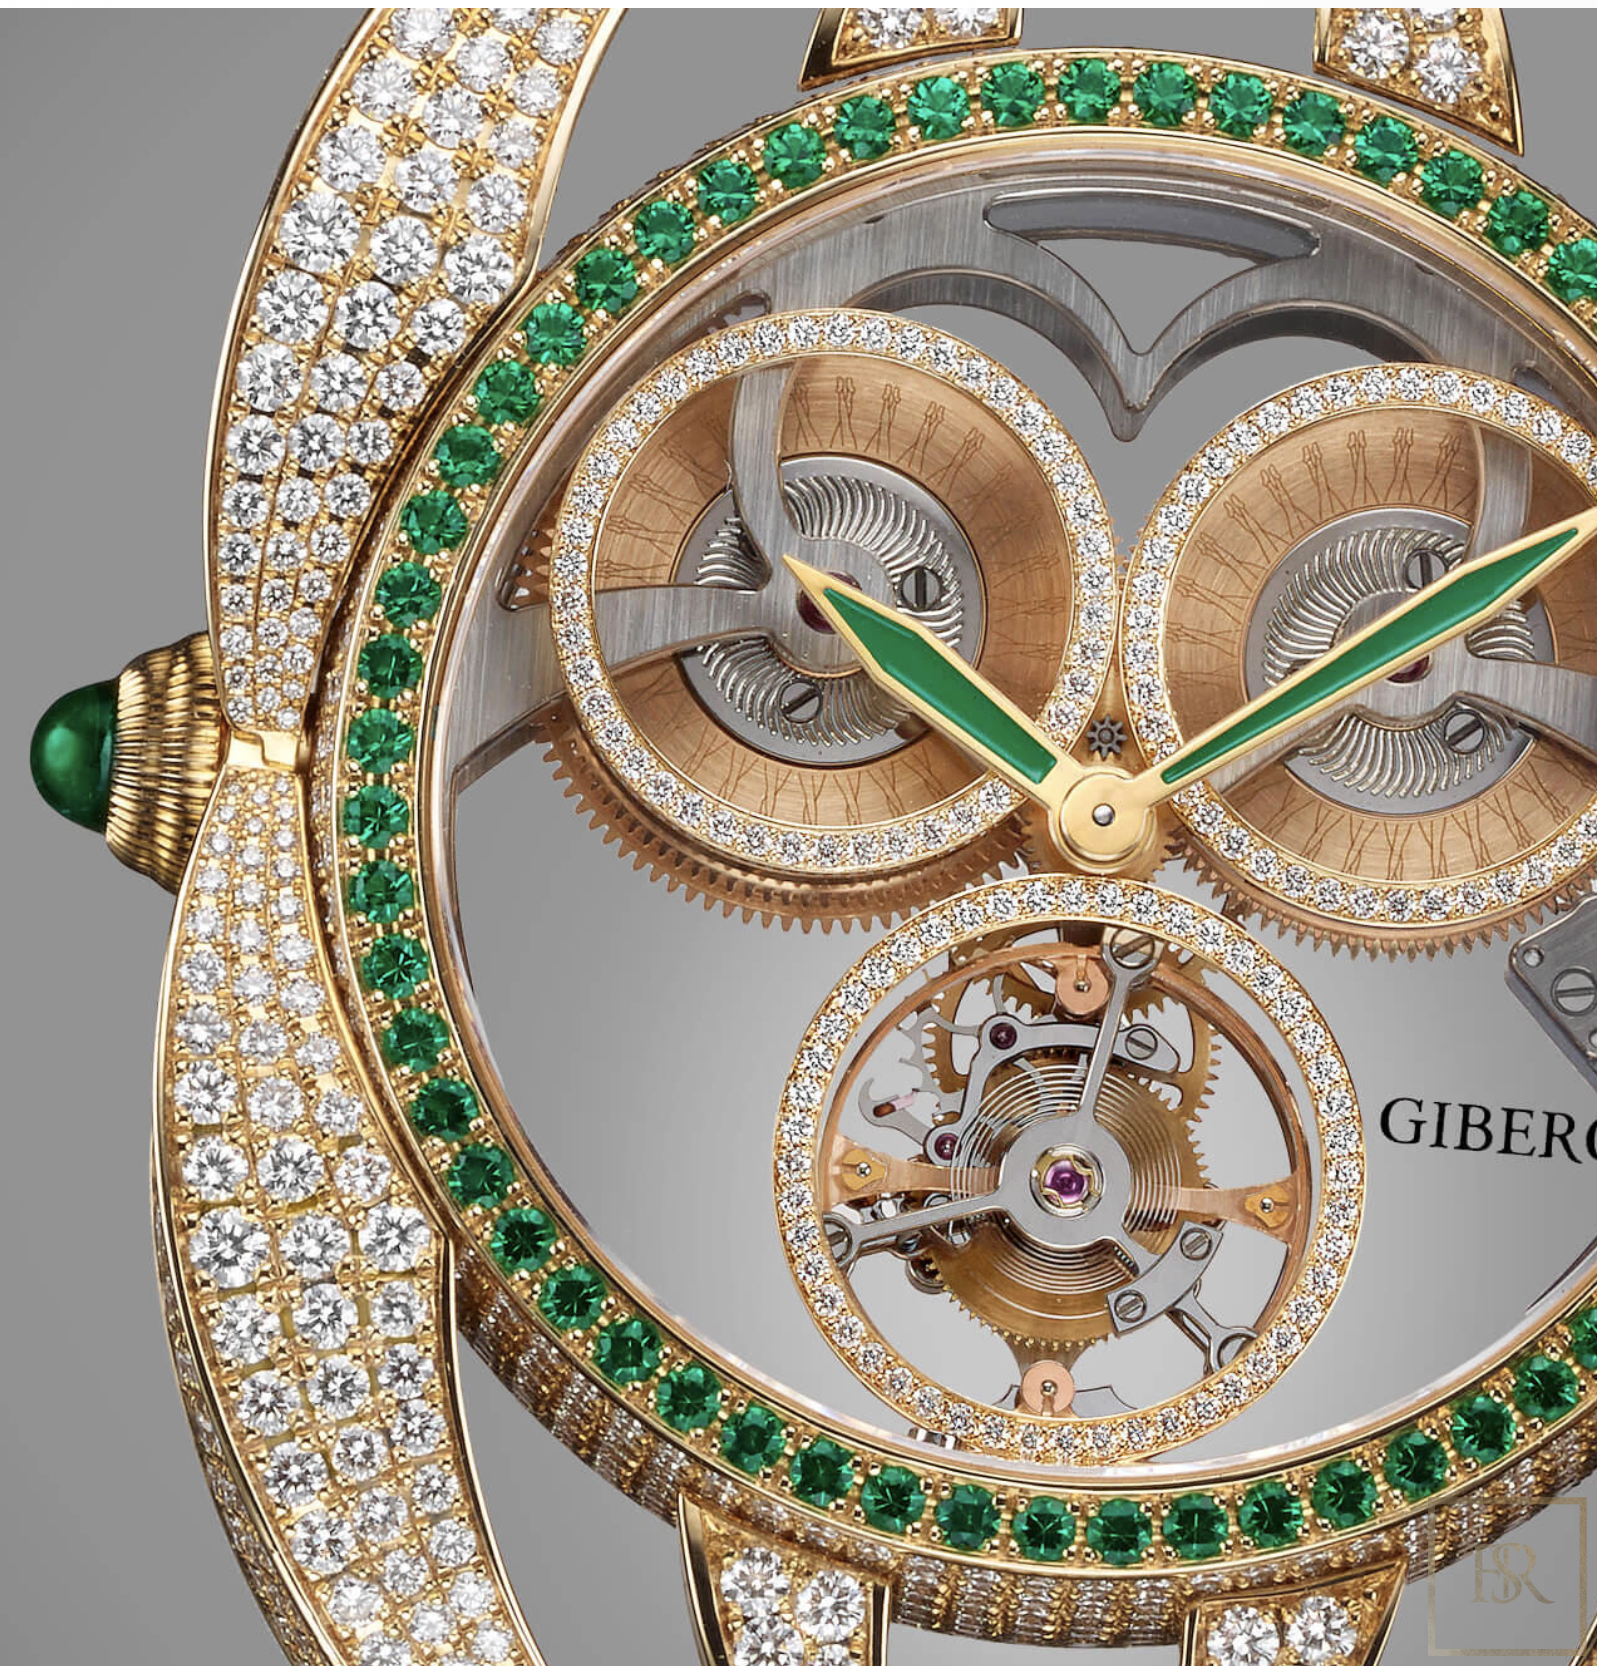 Watch NIURA Emerald - GIBERG for sale For Super Rich